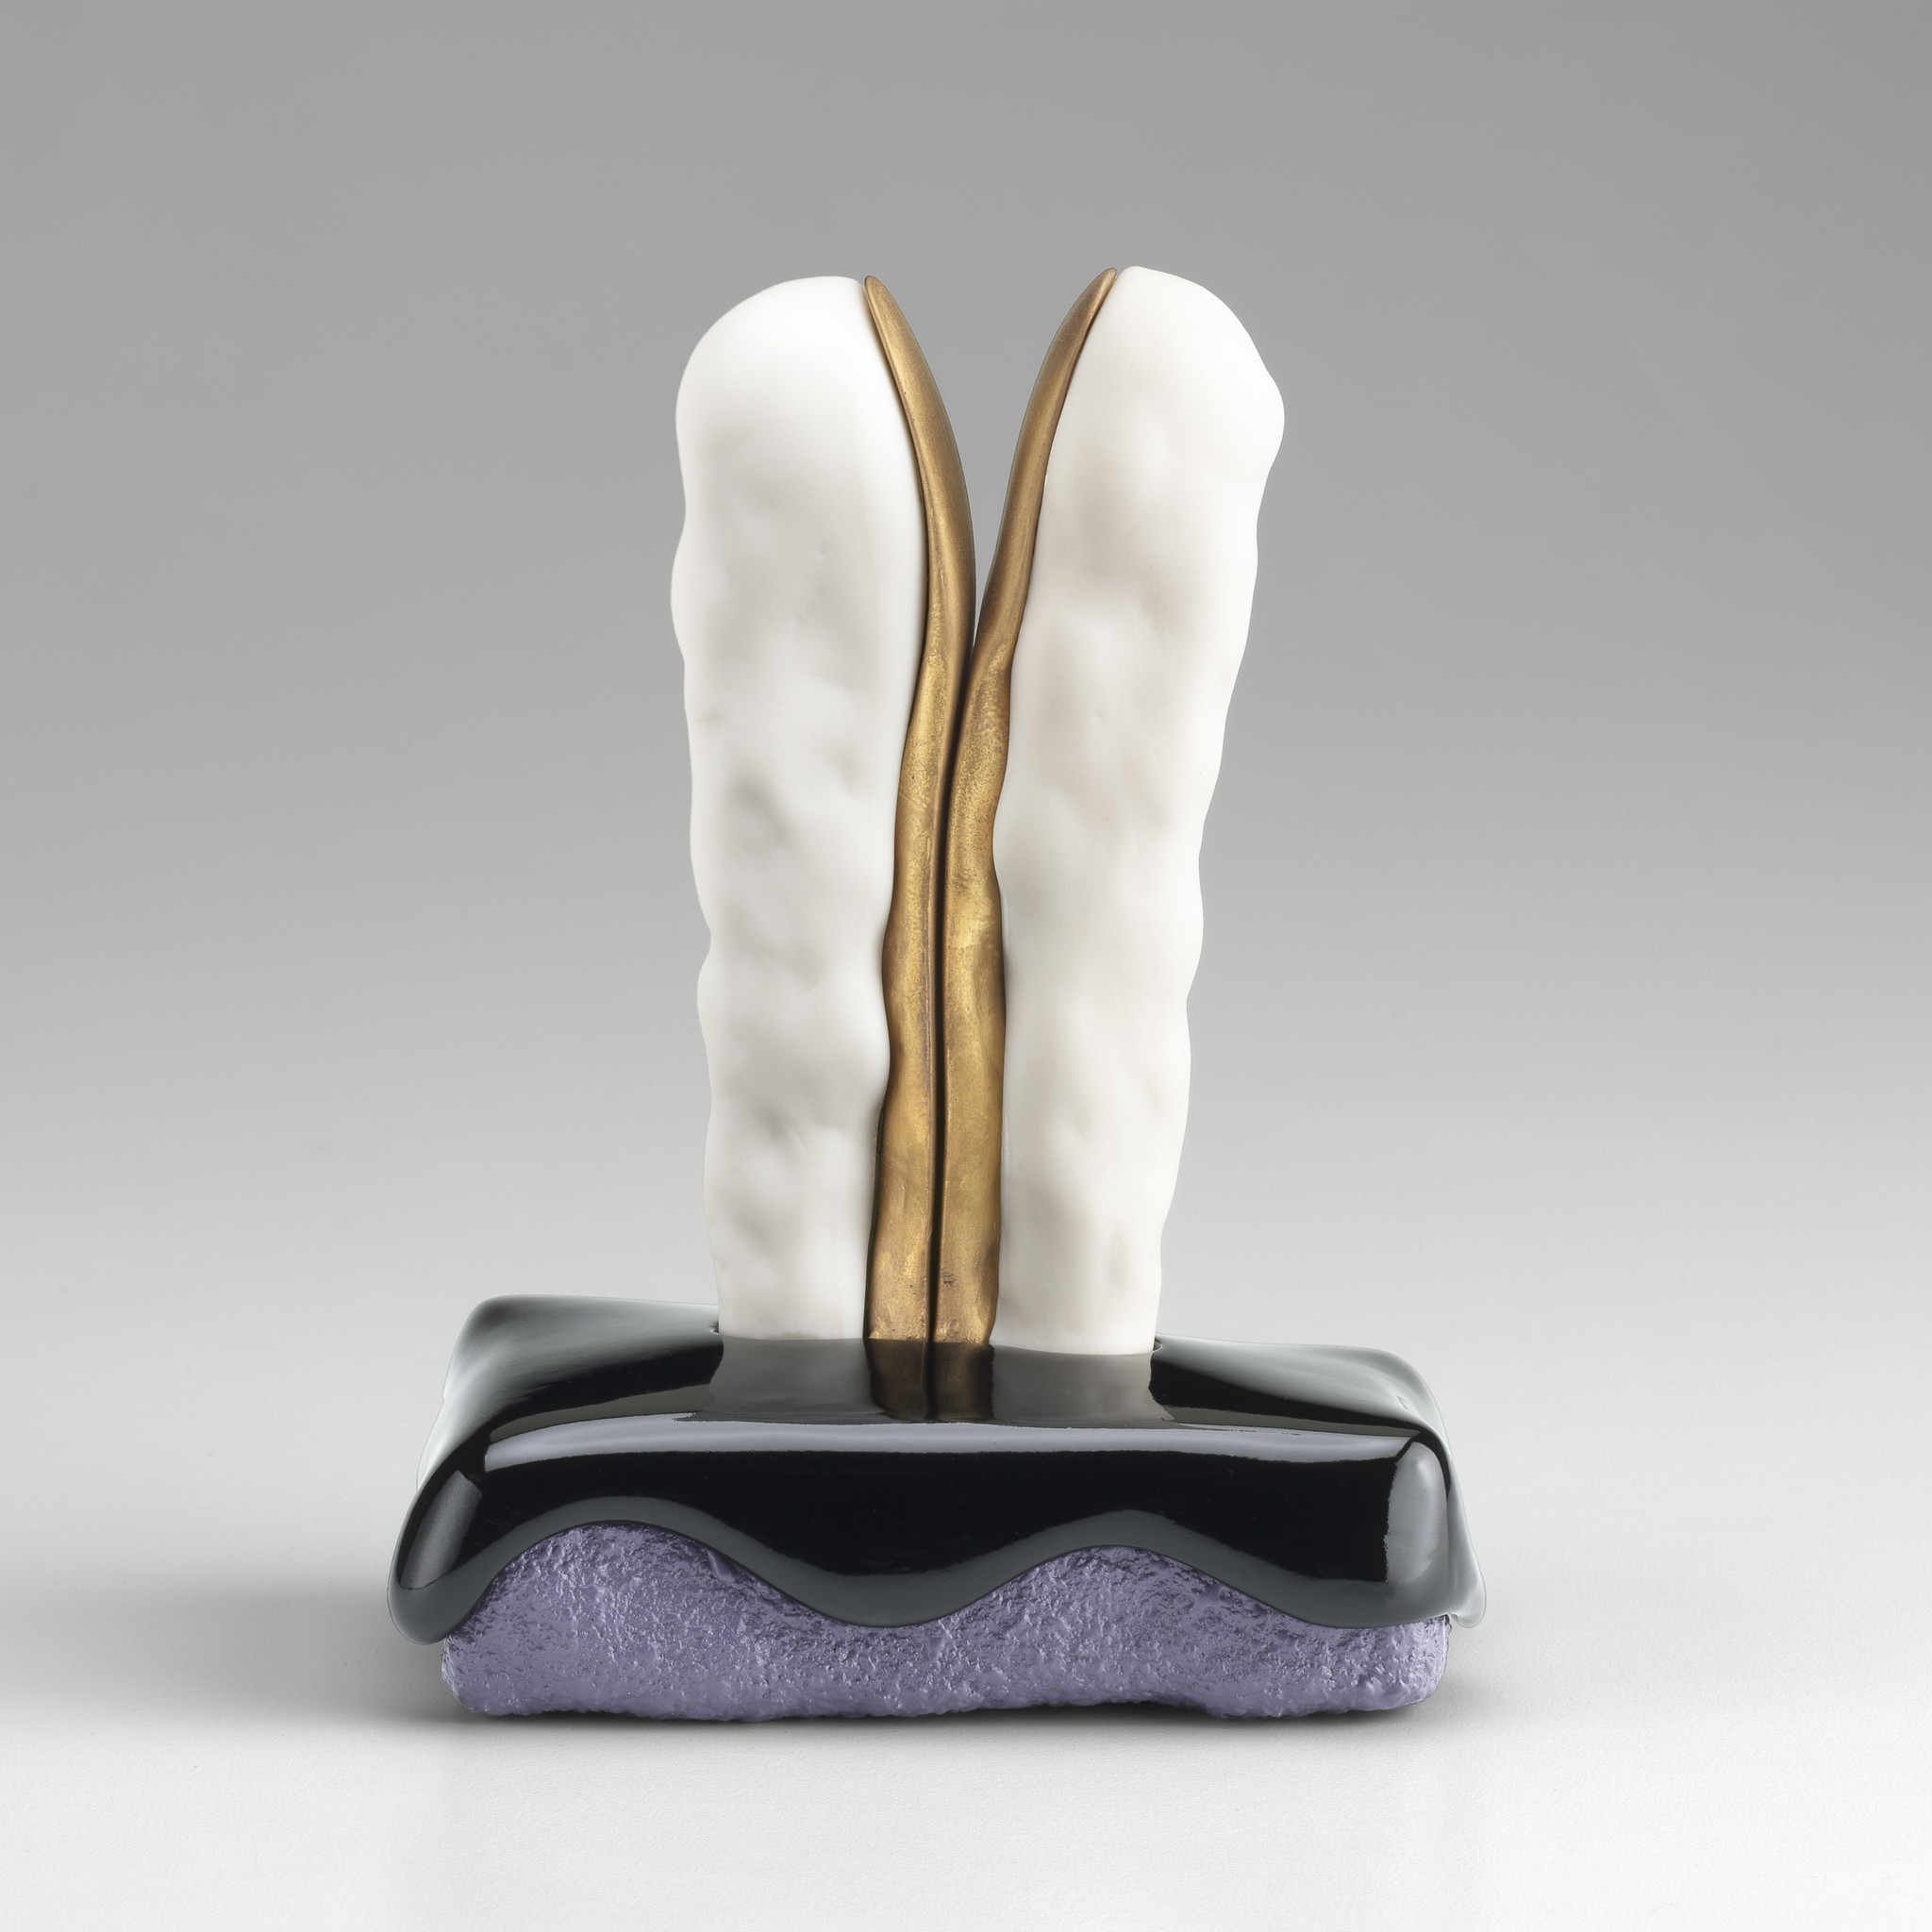 """Ron Nagle's """"Message to Raphael,"""" 2016, ceramic, glaze, porcelain, catalyzed polyurethane, epoxy resin and acrylic, 5.5 inches by 4.5 inches by 2.5 inches"""